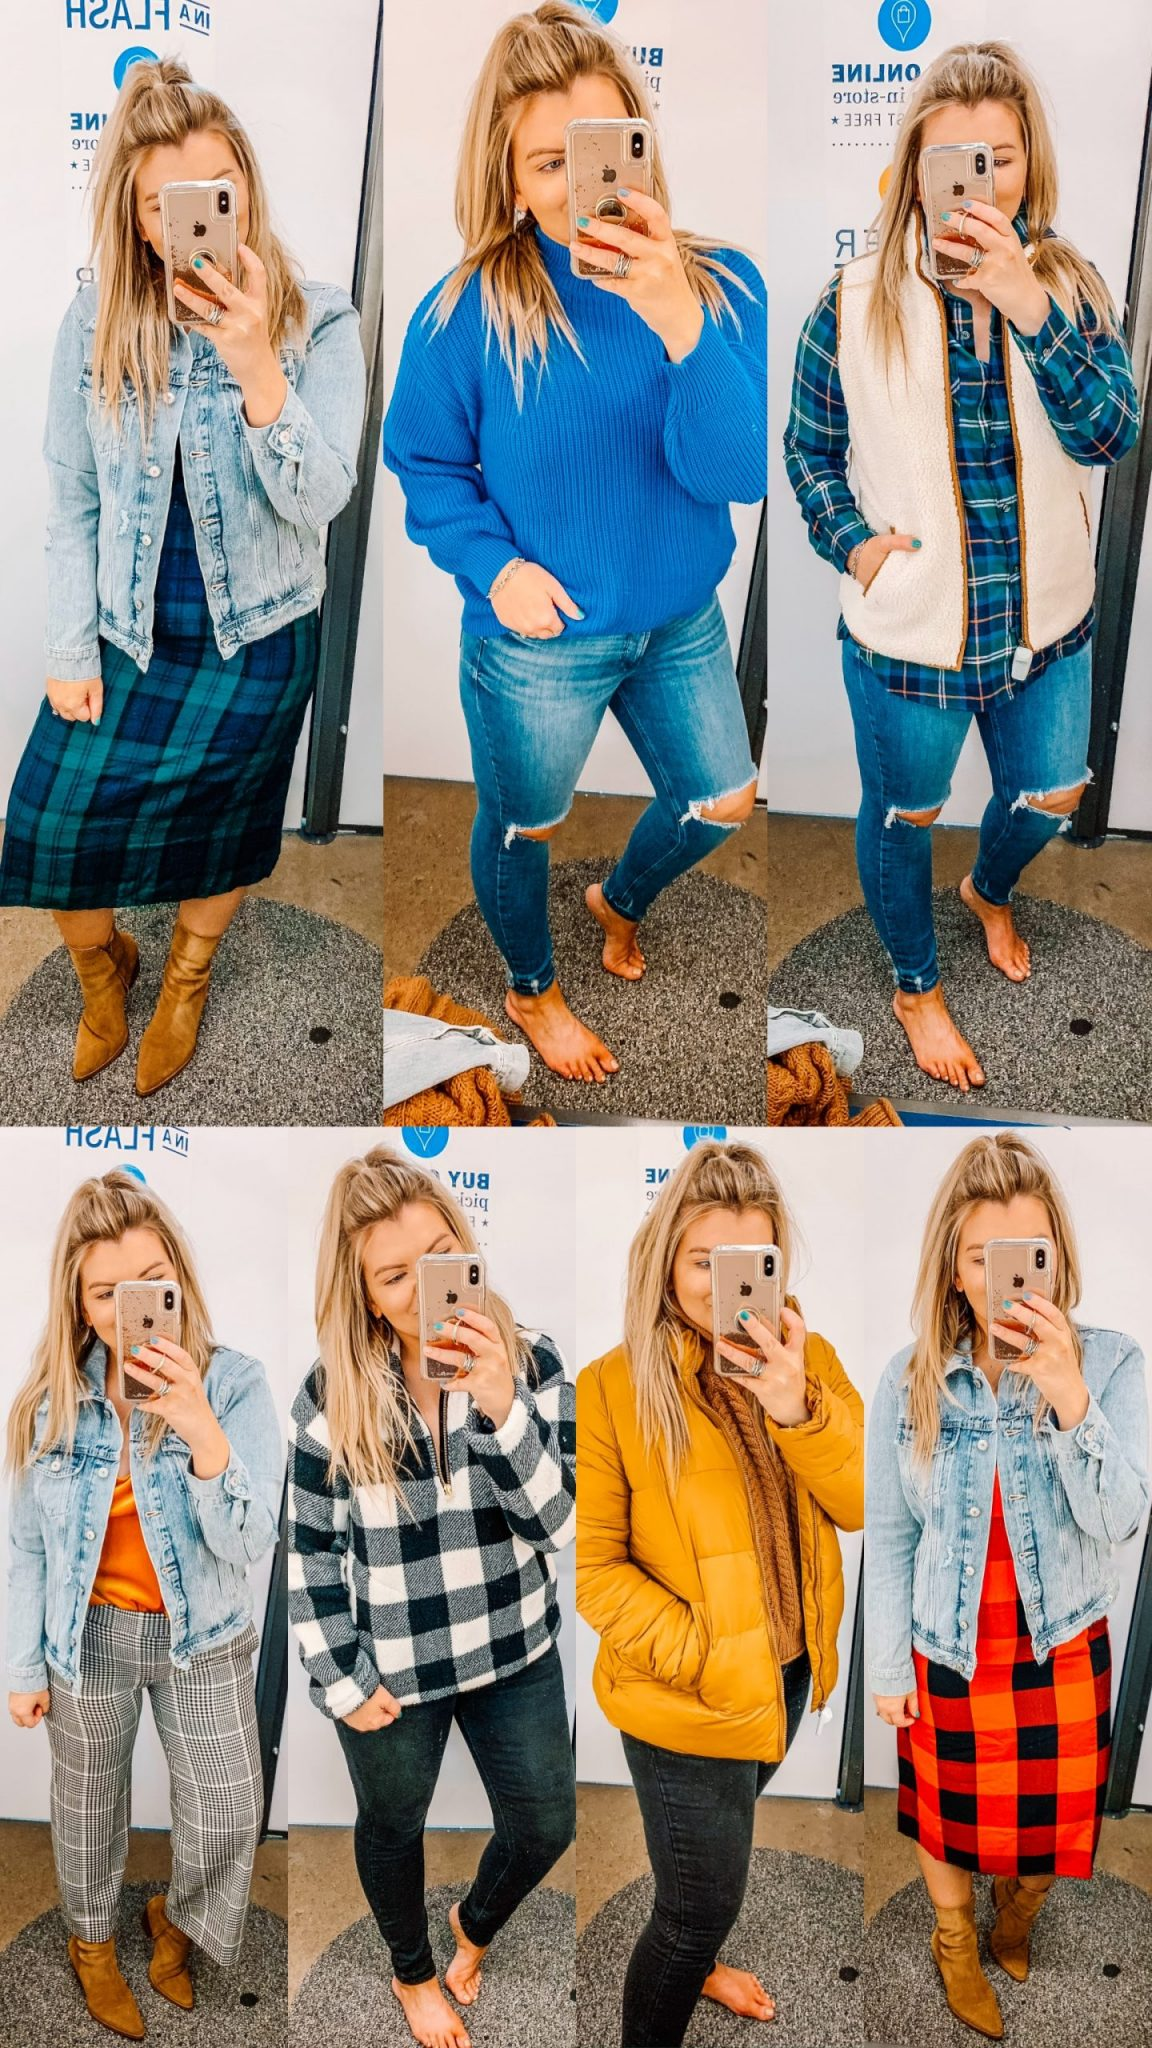 The Best of the Best Cyber Week Deals You Should be Shopping | Shopping | The Glitter Gospel, aerie, american eagle, old navy, athleta, francesca's, loft, H&M, express, spoiled rotten boutique, sweaters, christmas gifts, christmas shopping